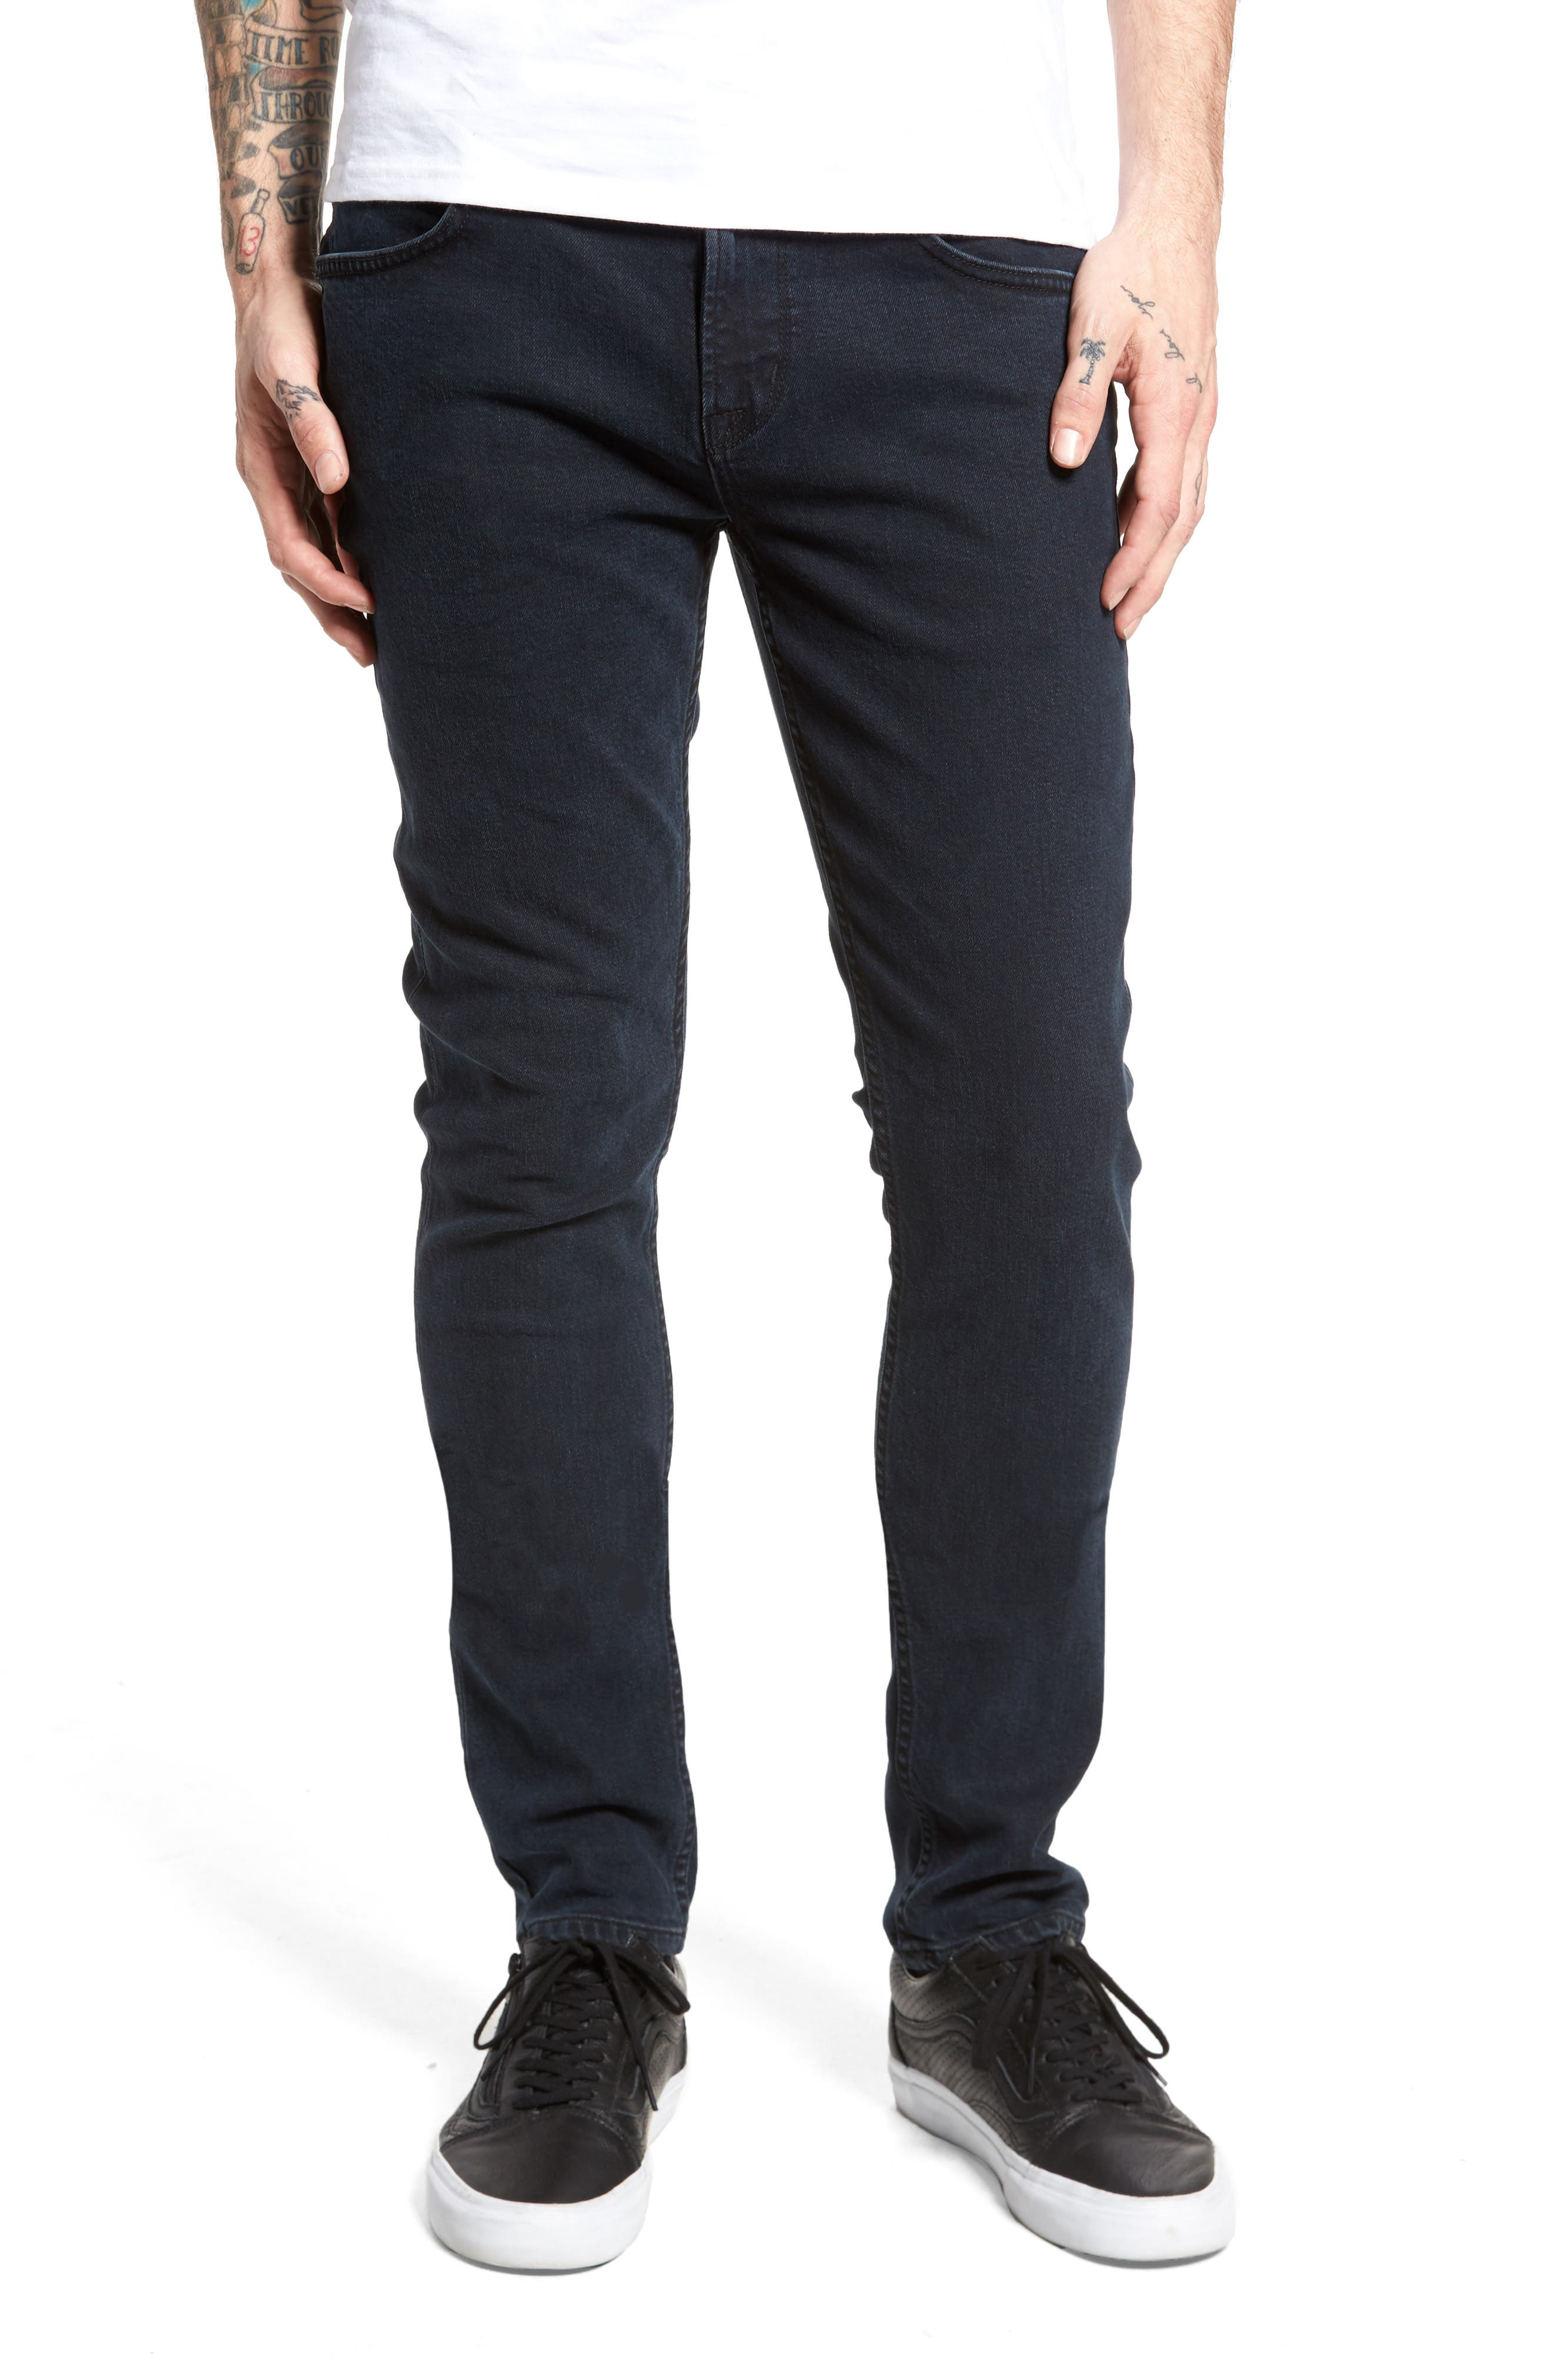 Axl Skinny Fit Jeans,                         Main,                         color, 401